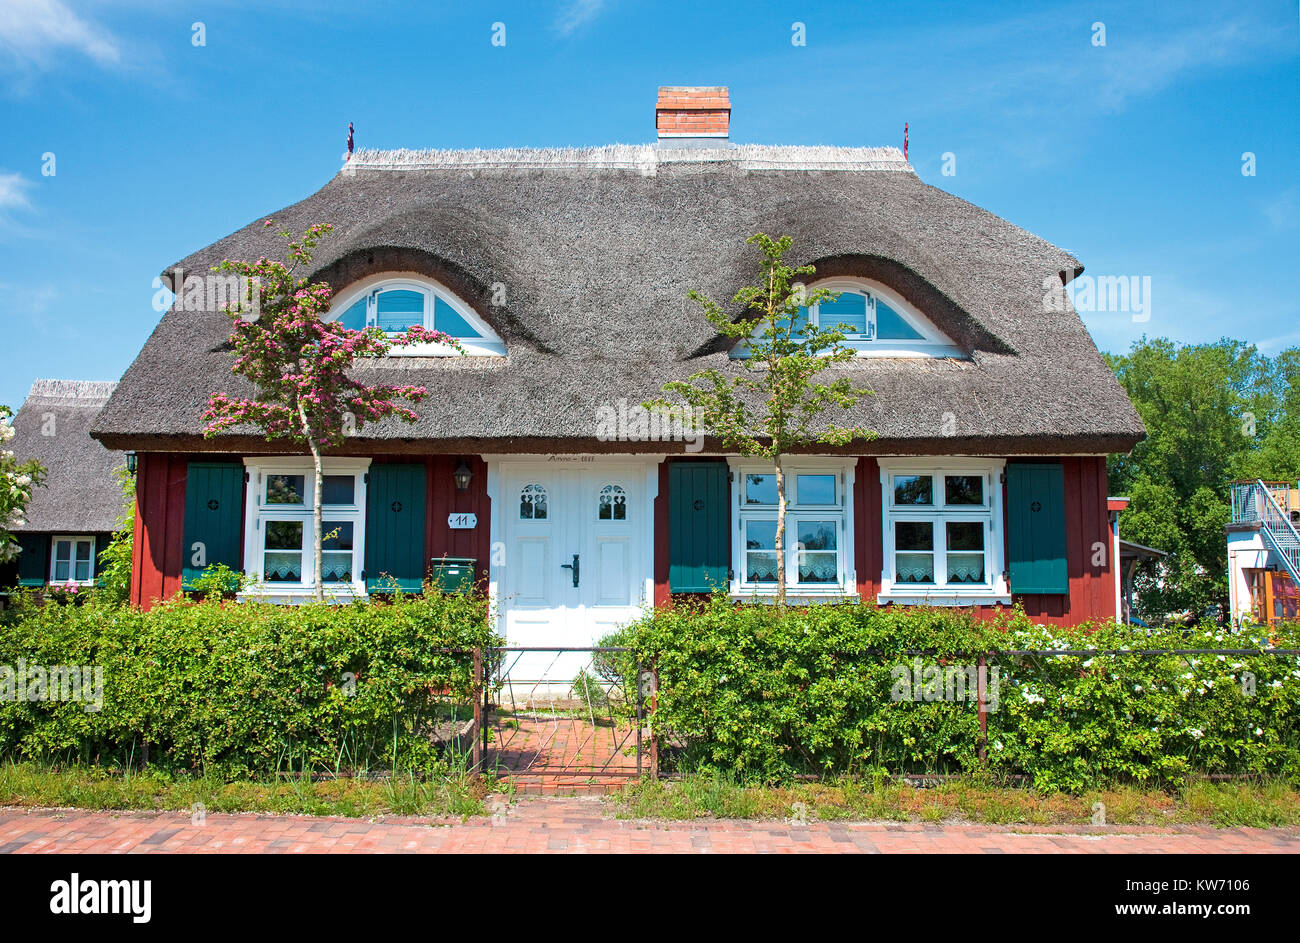 Thatched-roof house at Wieck at Darss, Fischland, Mecklenburg-Western Pomerania, Baltic sea, Germany, Europe Stock Photo